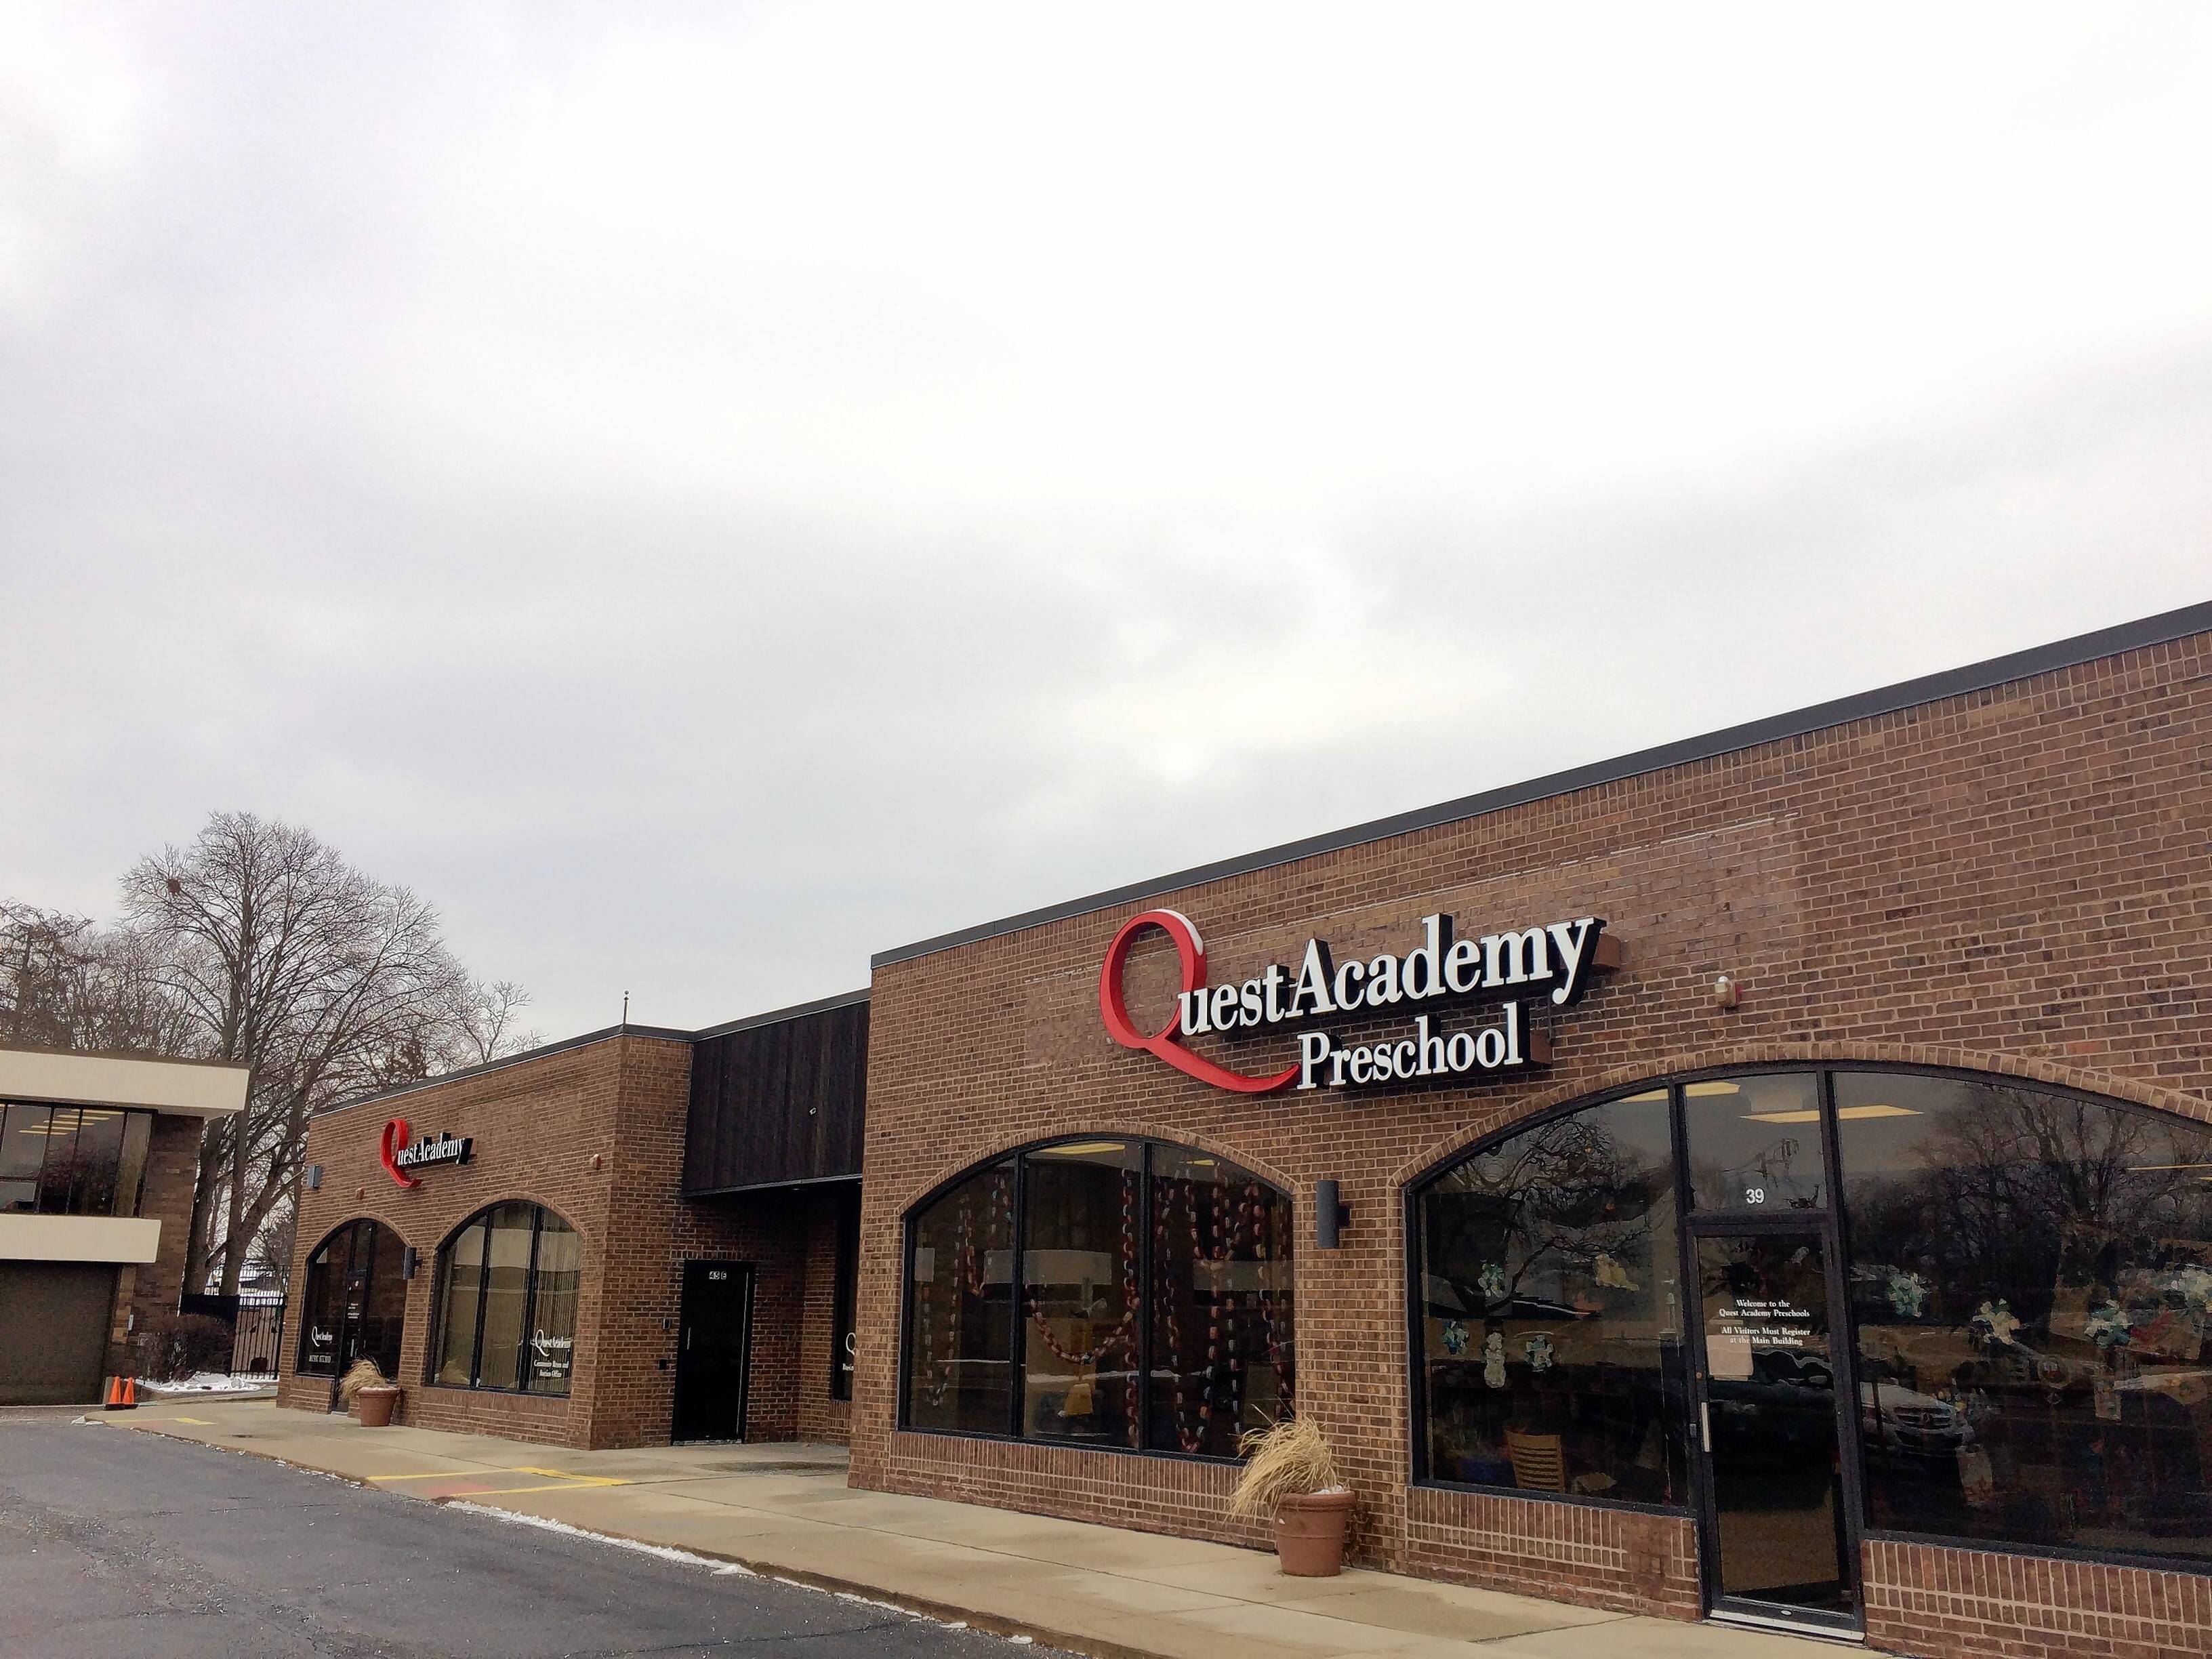 Palatine approves Quest Academy children's museum